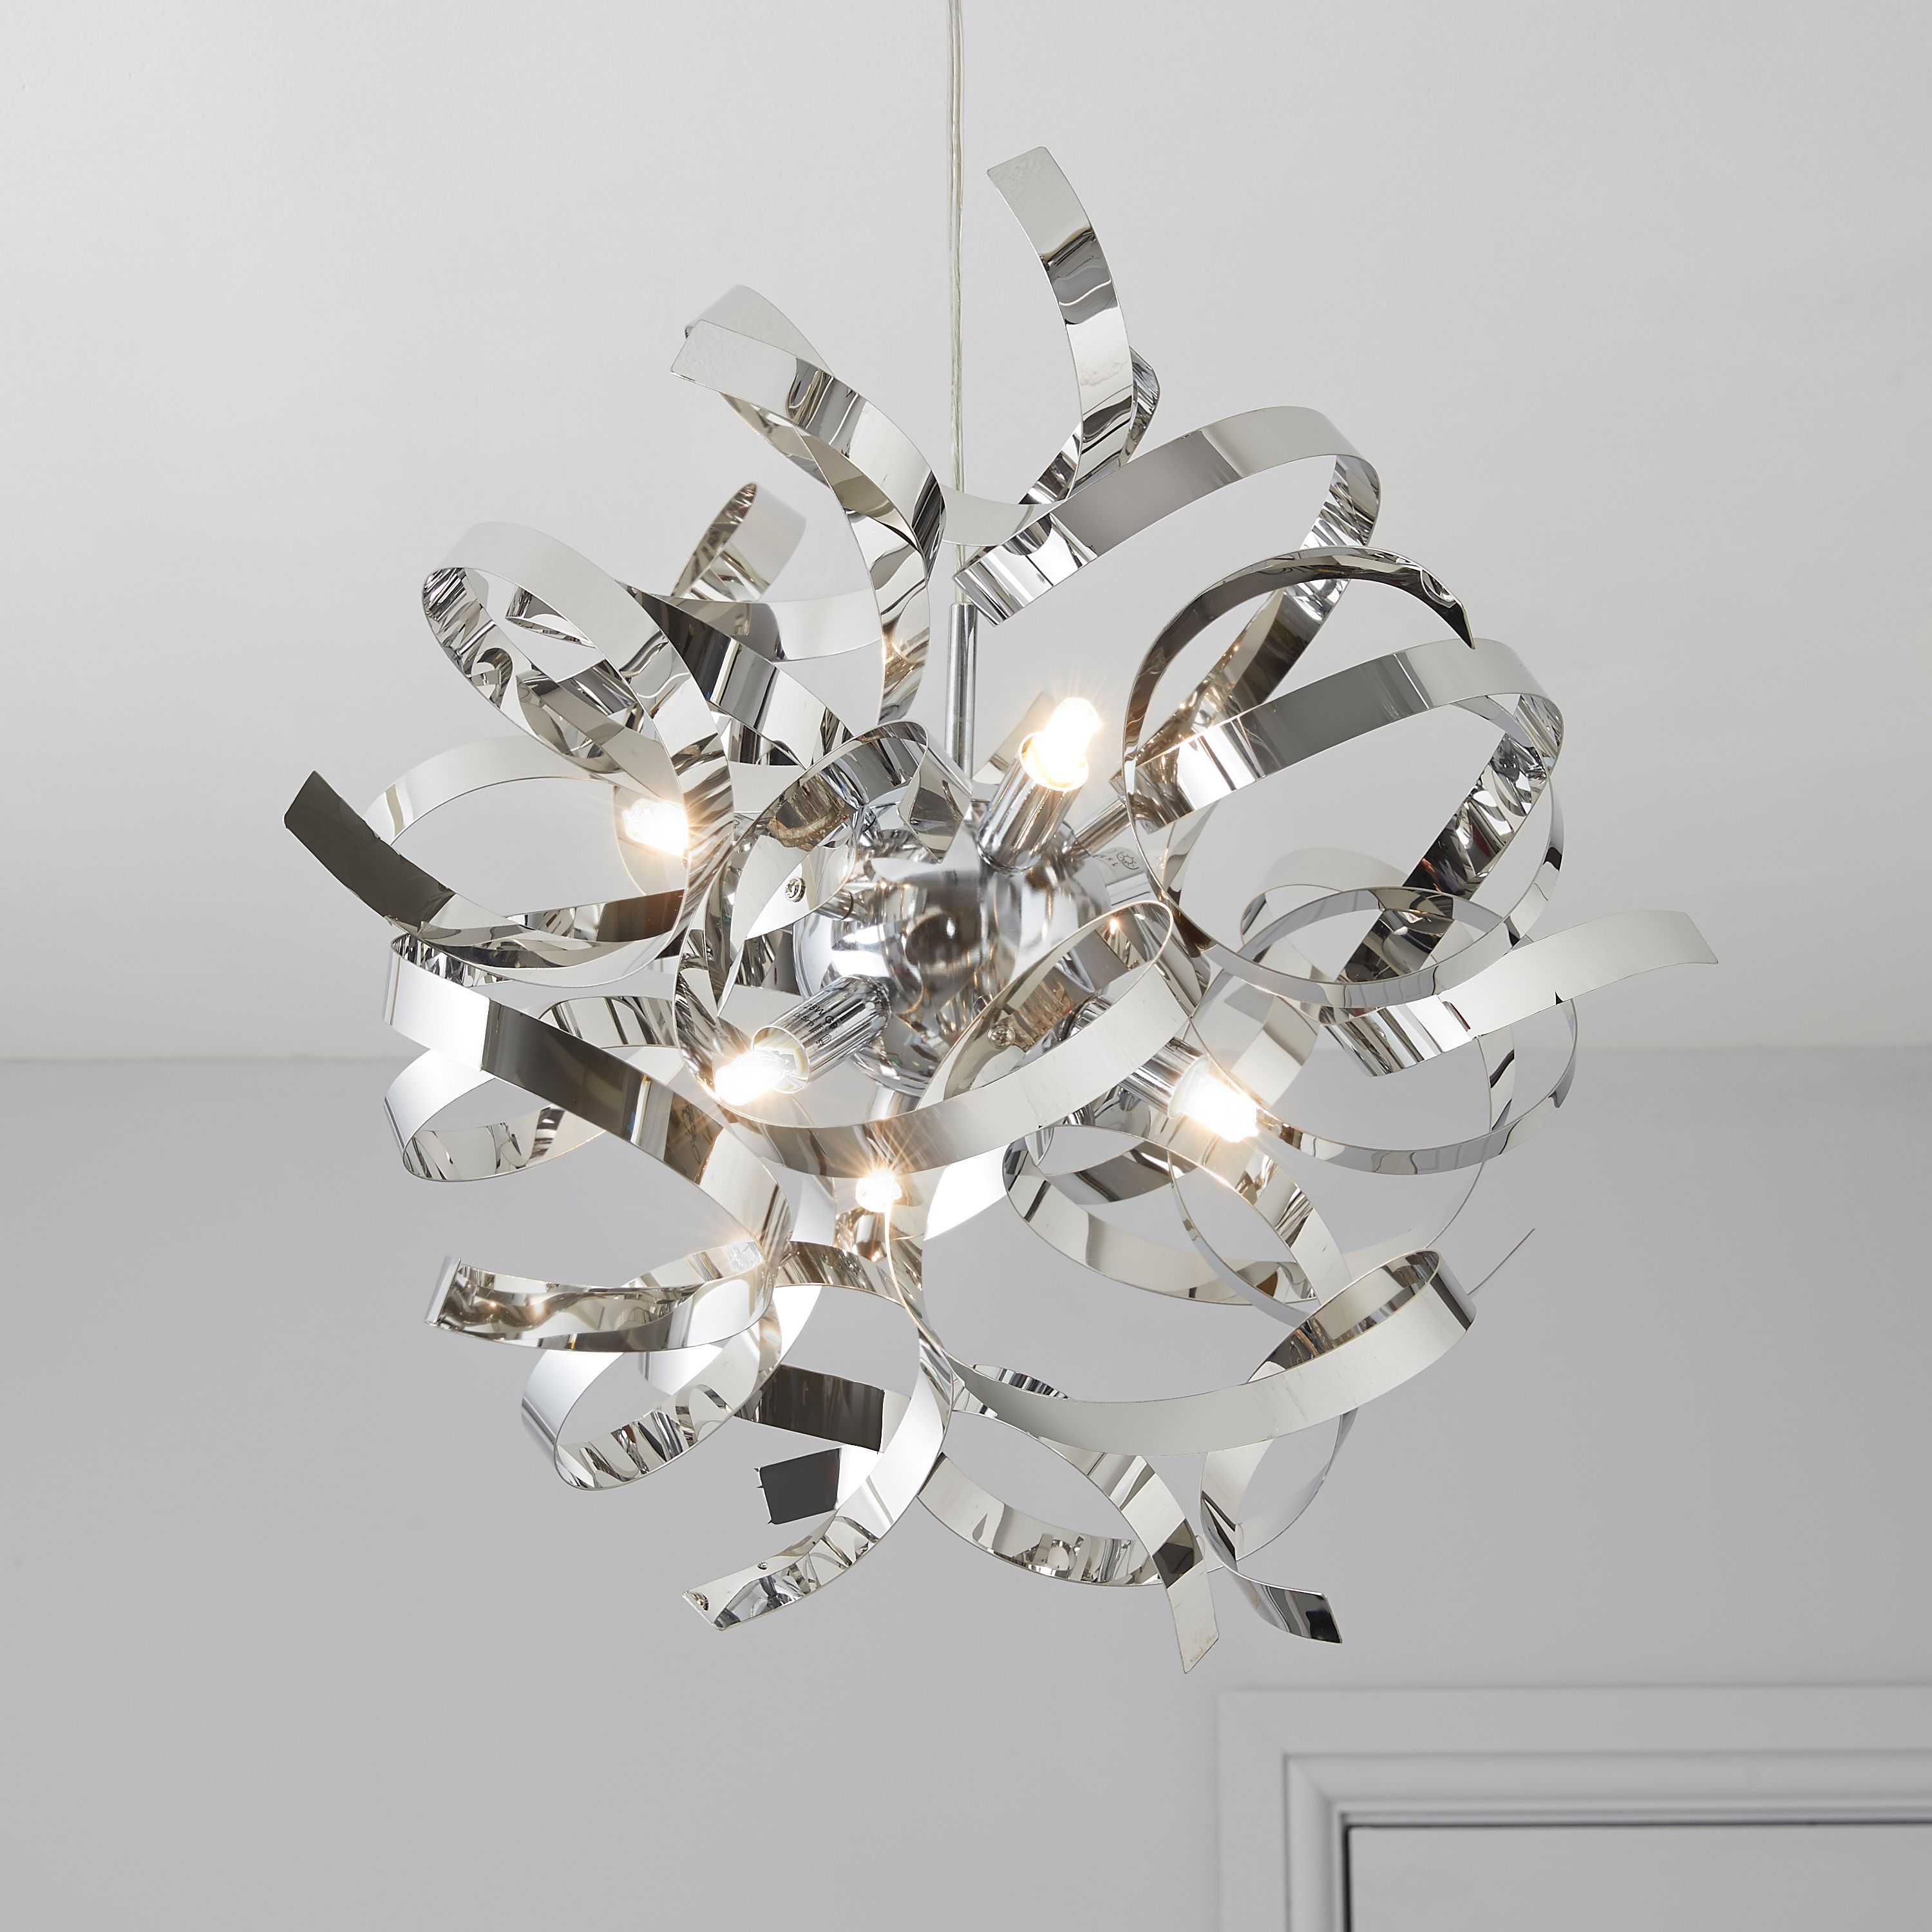 Heka Curled Silver Chrome Effect 6 Lamp Pendant Ceiling Light Departments Diy At B Q Ceiling Lights Ceiling Pendant Lights